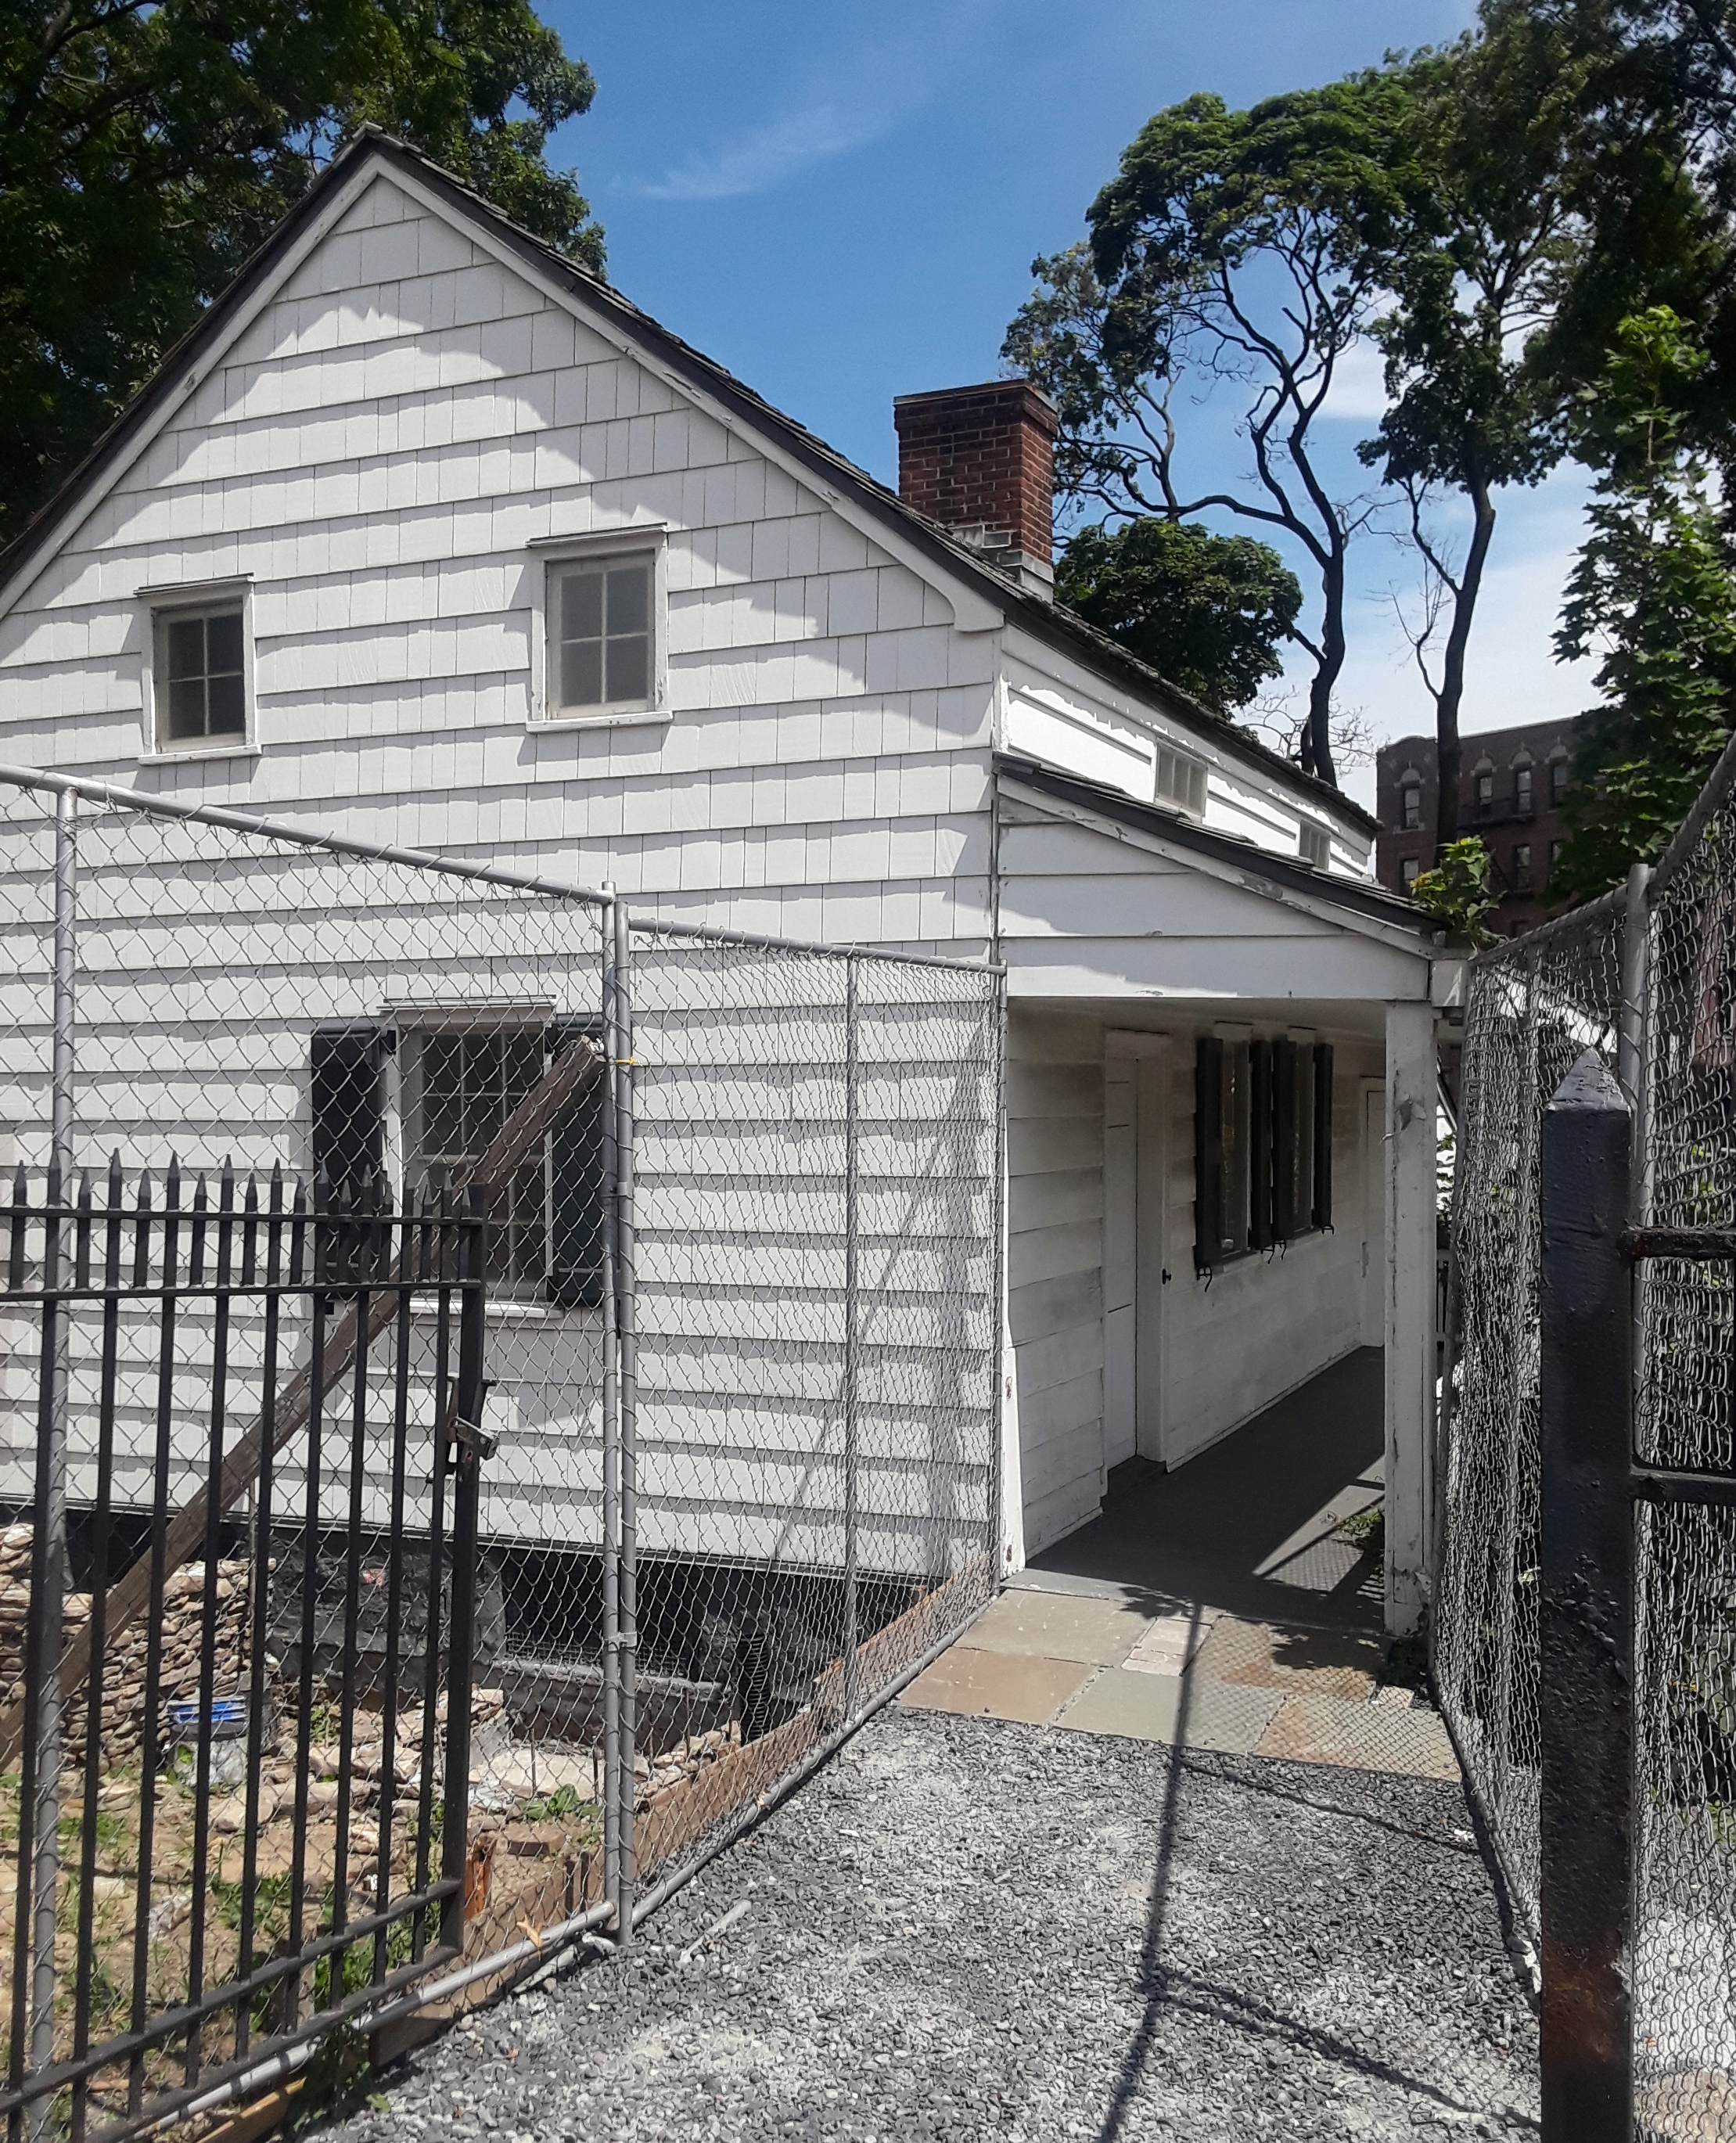 The Edgar Allan Poe Cottage in the Bronx: My Annabel Lee